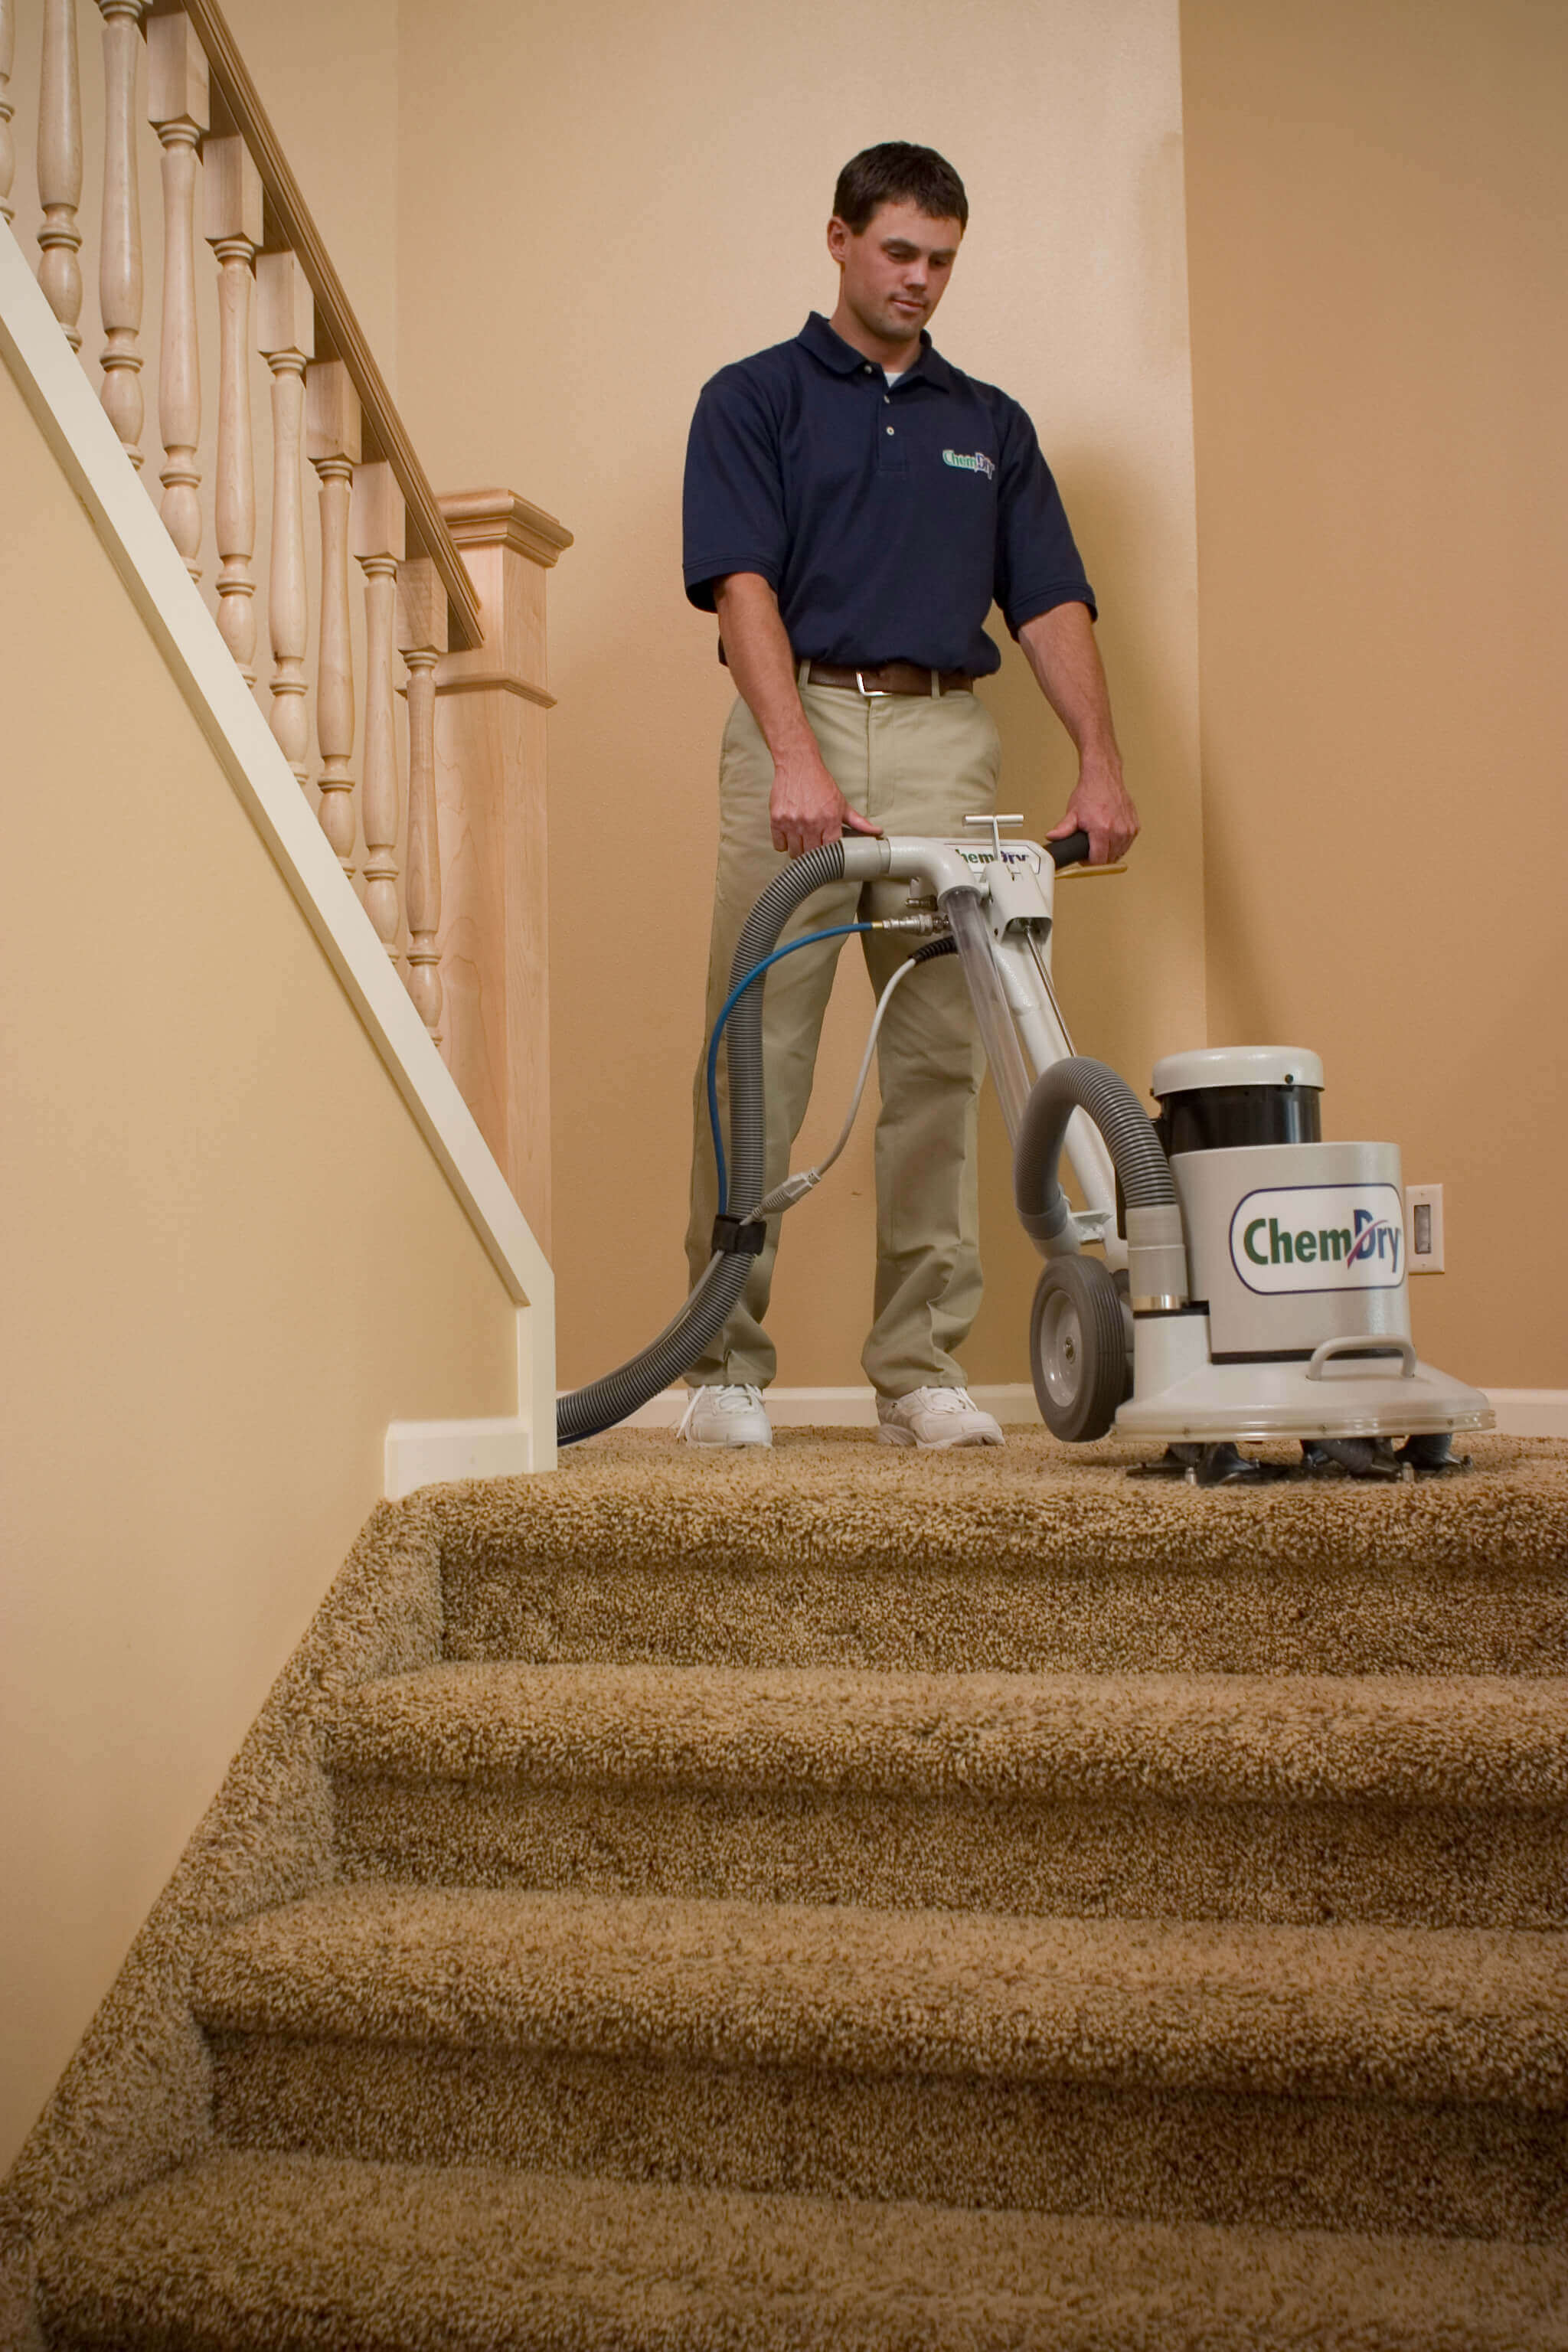 chem-dry tech cleaning carpets in Tulsa, OK